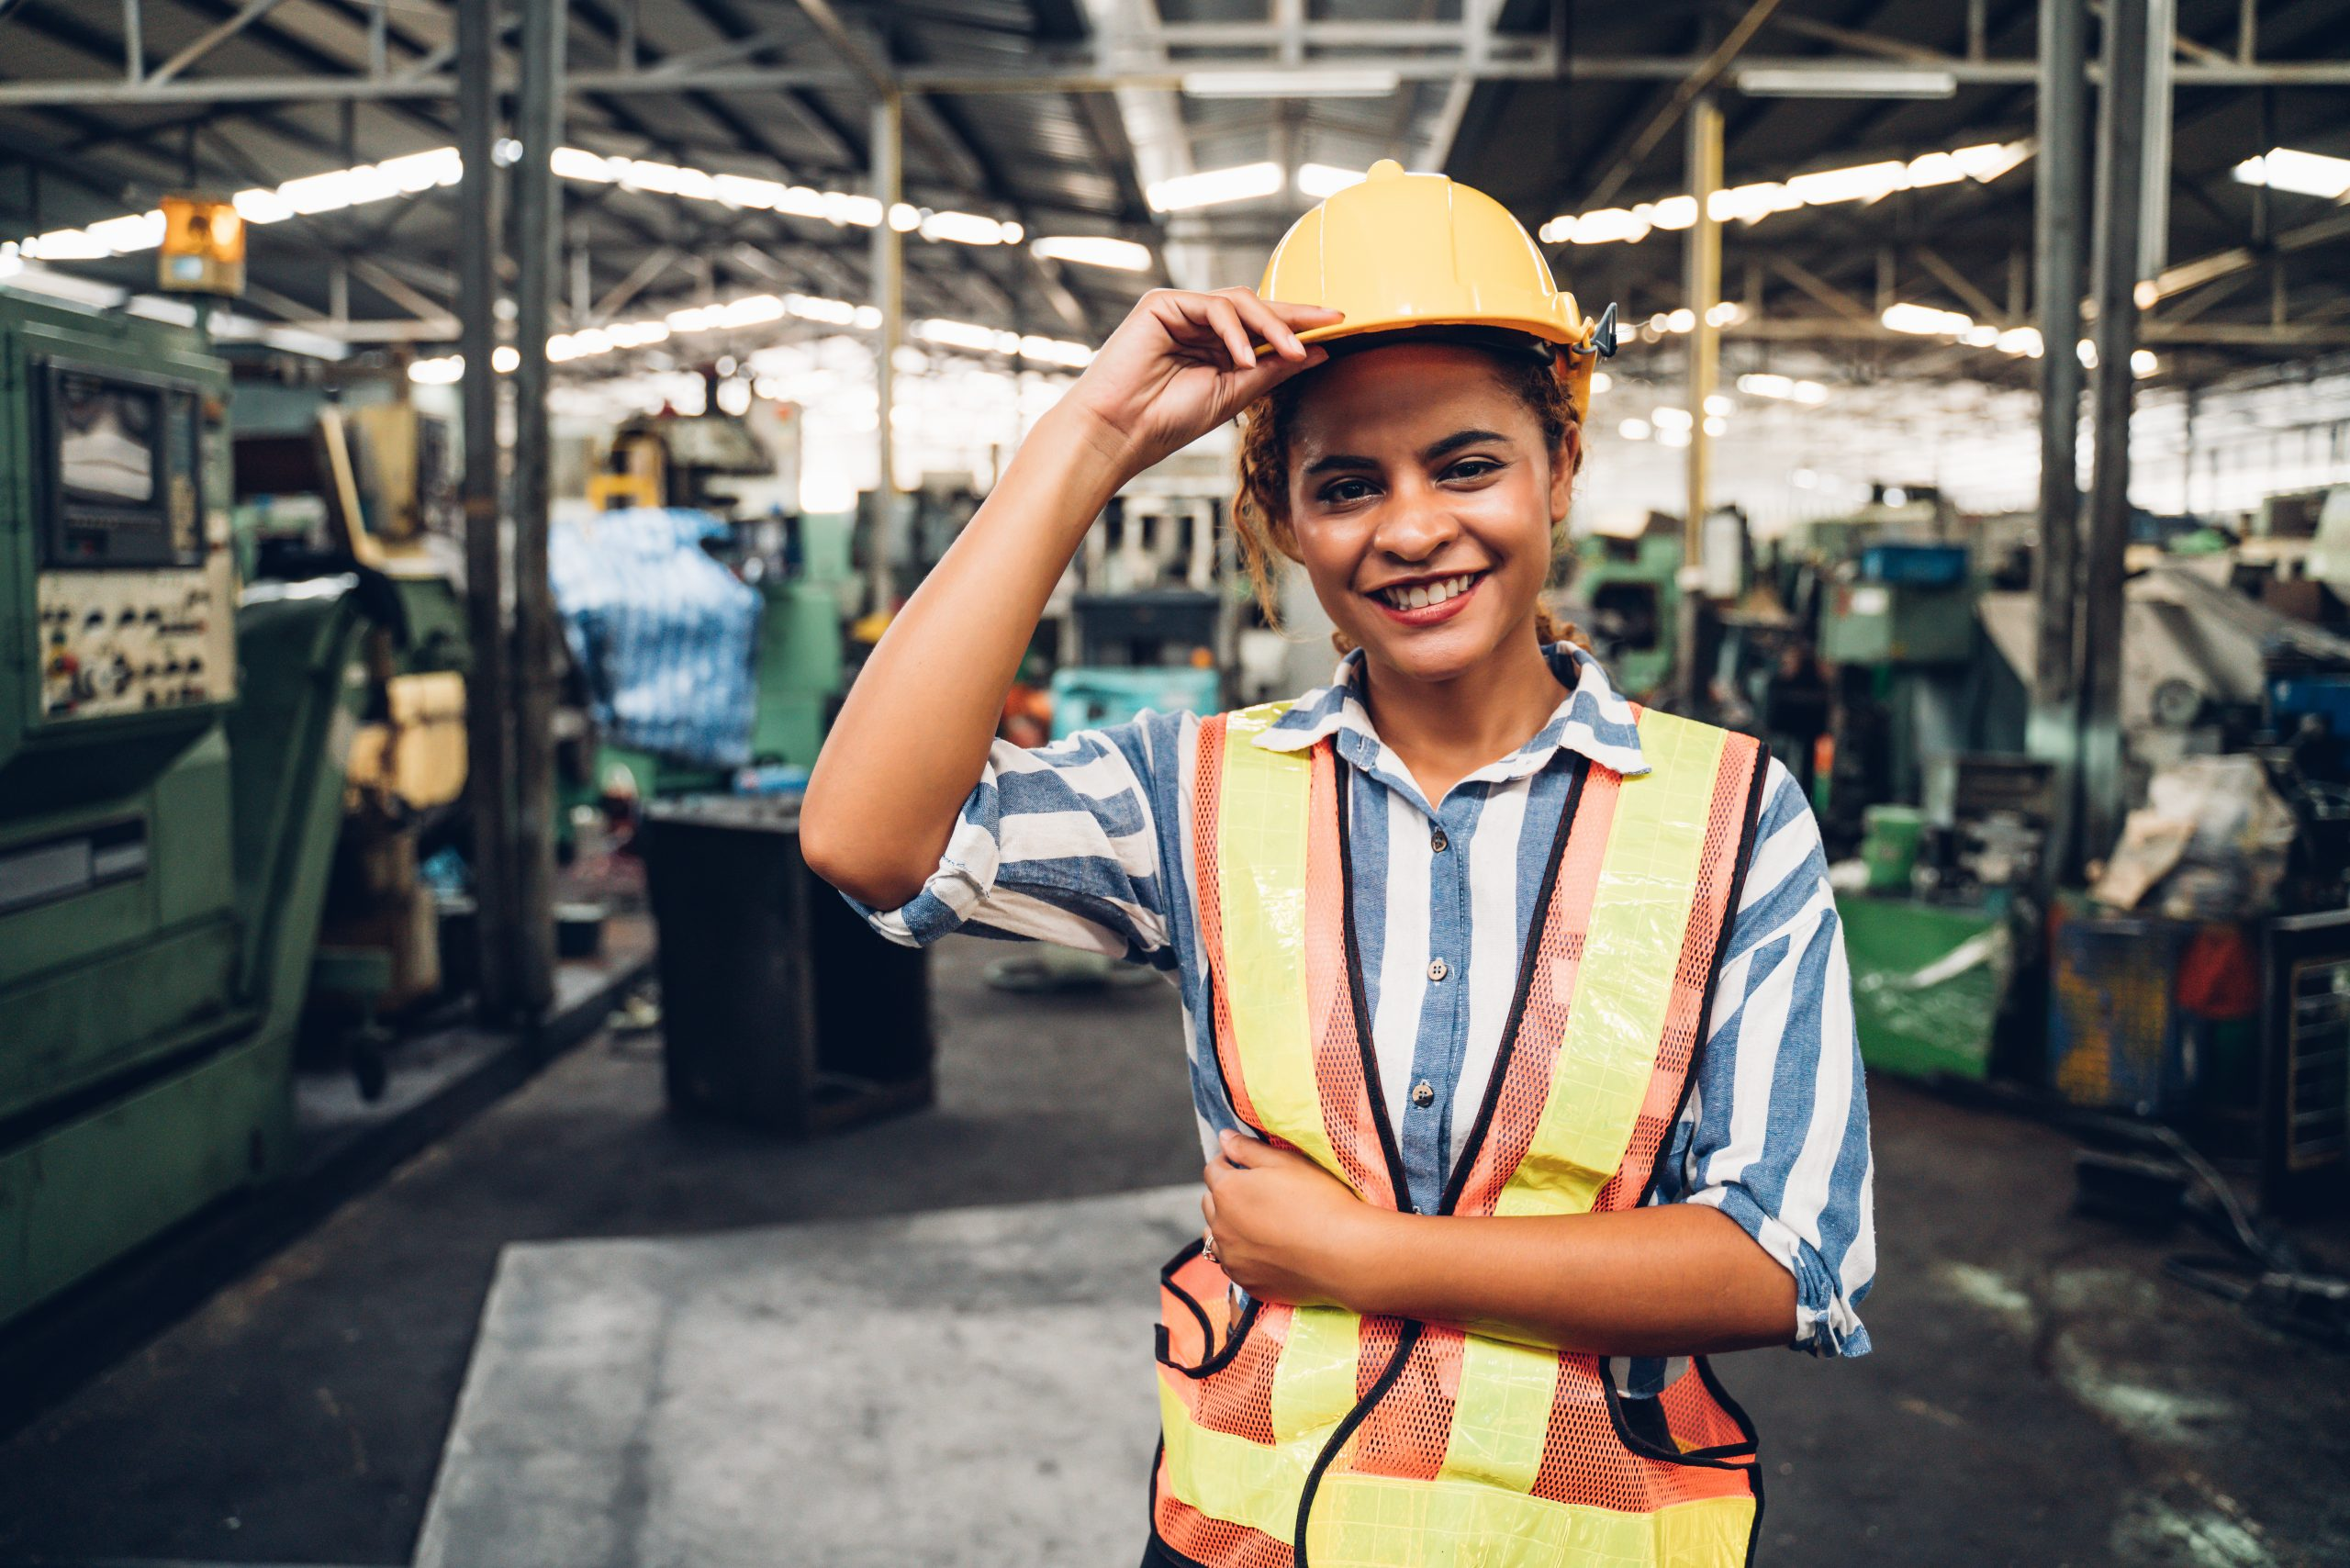 attractive young african woman smiling and working engineering in industry.Portrait of young female worker in the factory.Work at the Heavy Industry Manufacturing Facility concept.